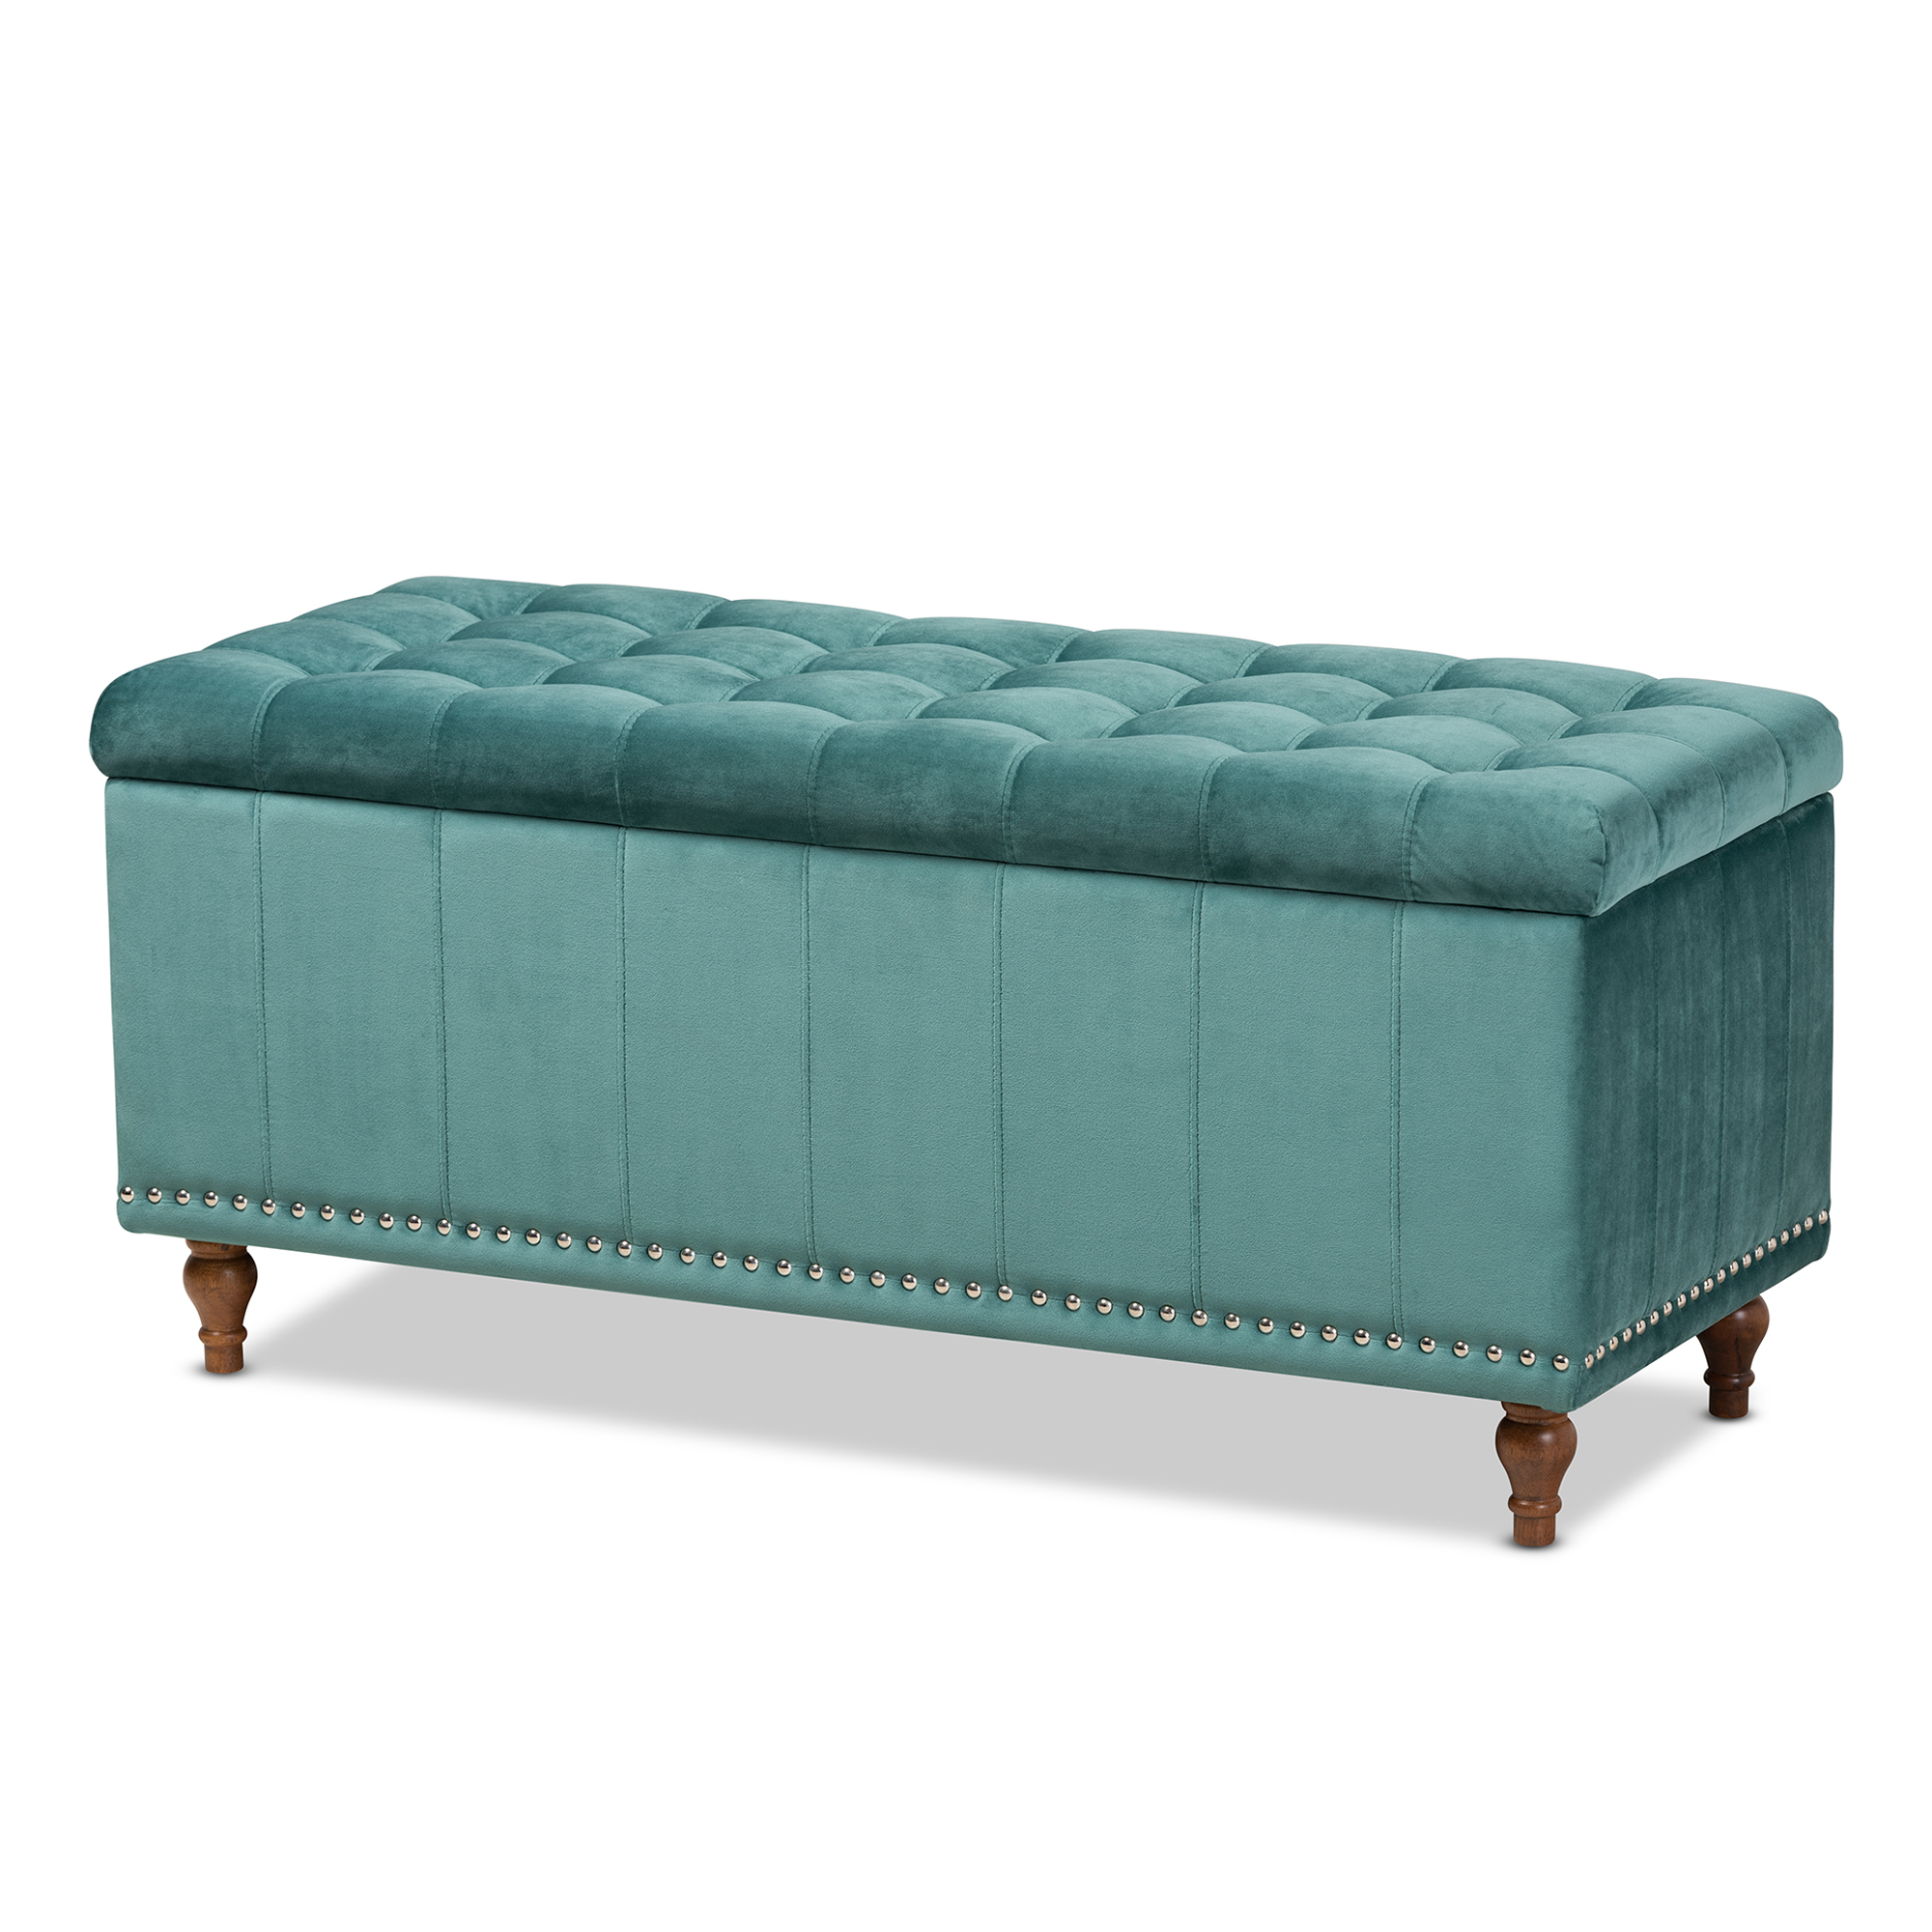 Baxton Studio Kaylee Modern And Contemporary Teal Blue Velvet Fabric Upholstered Button Tufted Storage Ottoman Bench